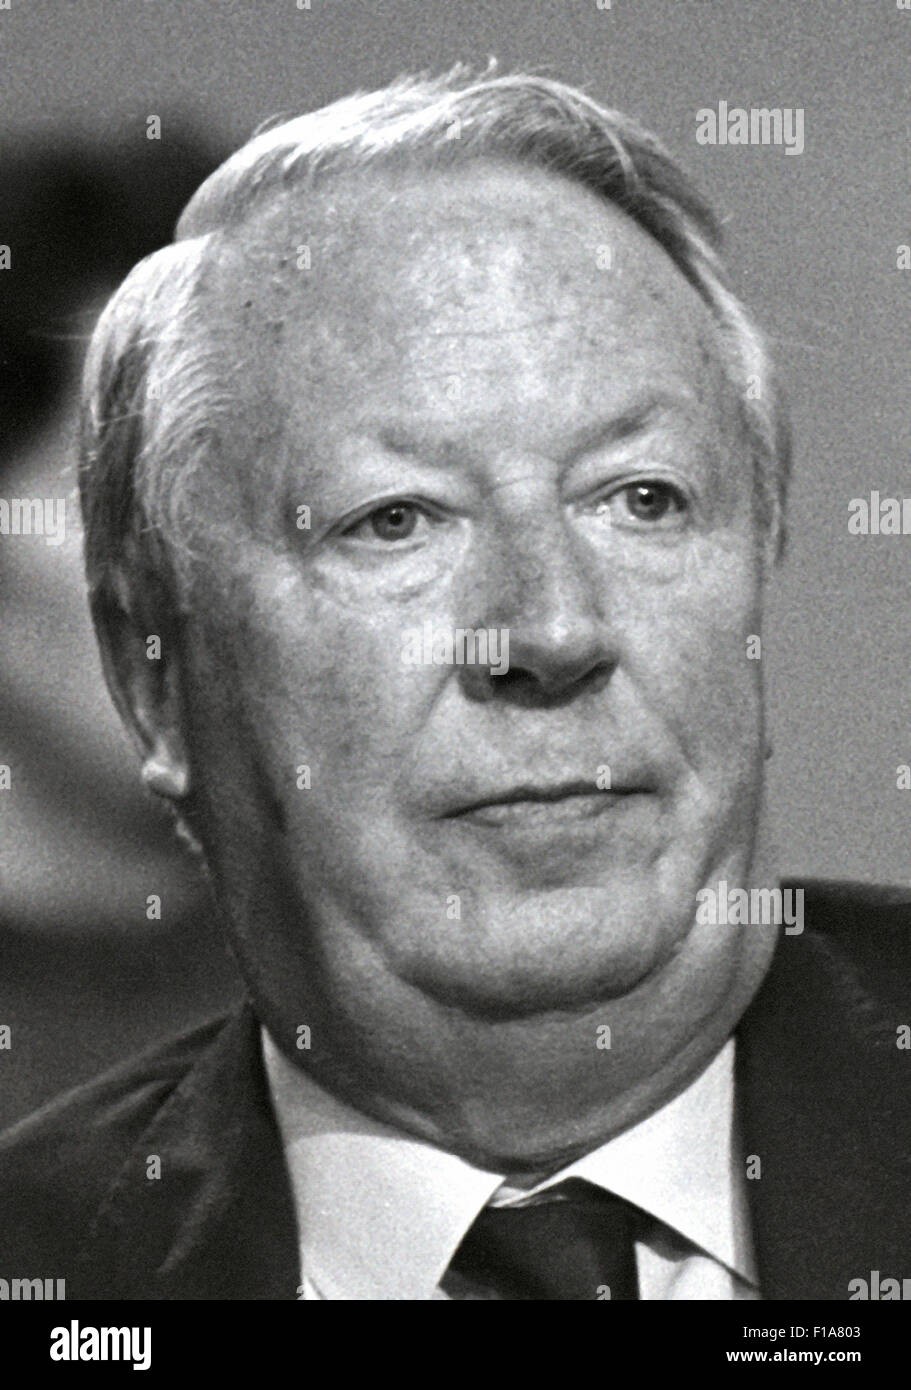 Edward Heath, Ted Heath, Sir Edward Heath Conservative Prime Minister 1970 - 1974. Exclusive image by Daviid Cole - Stock Image